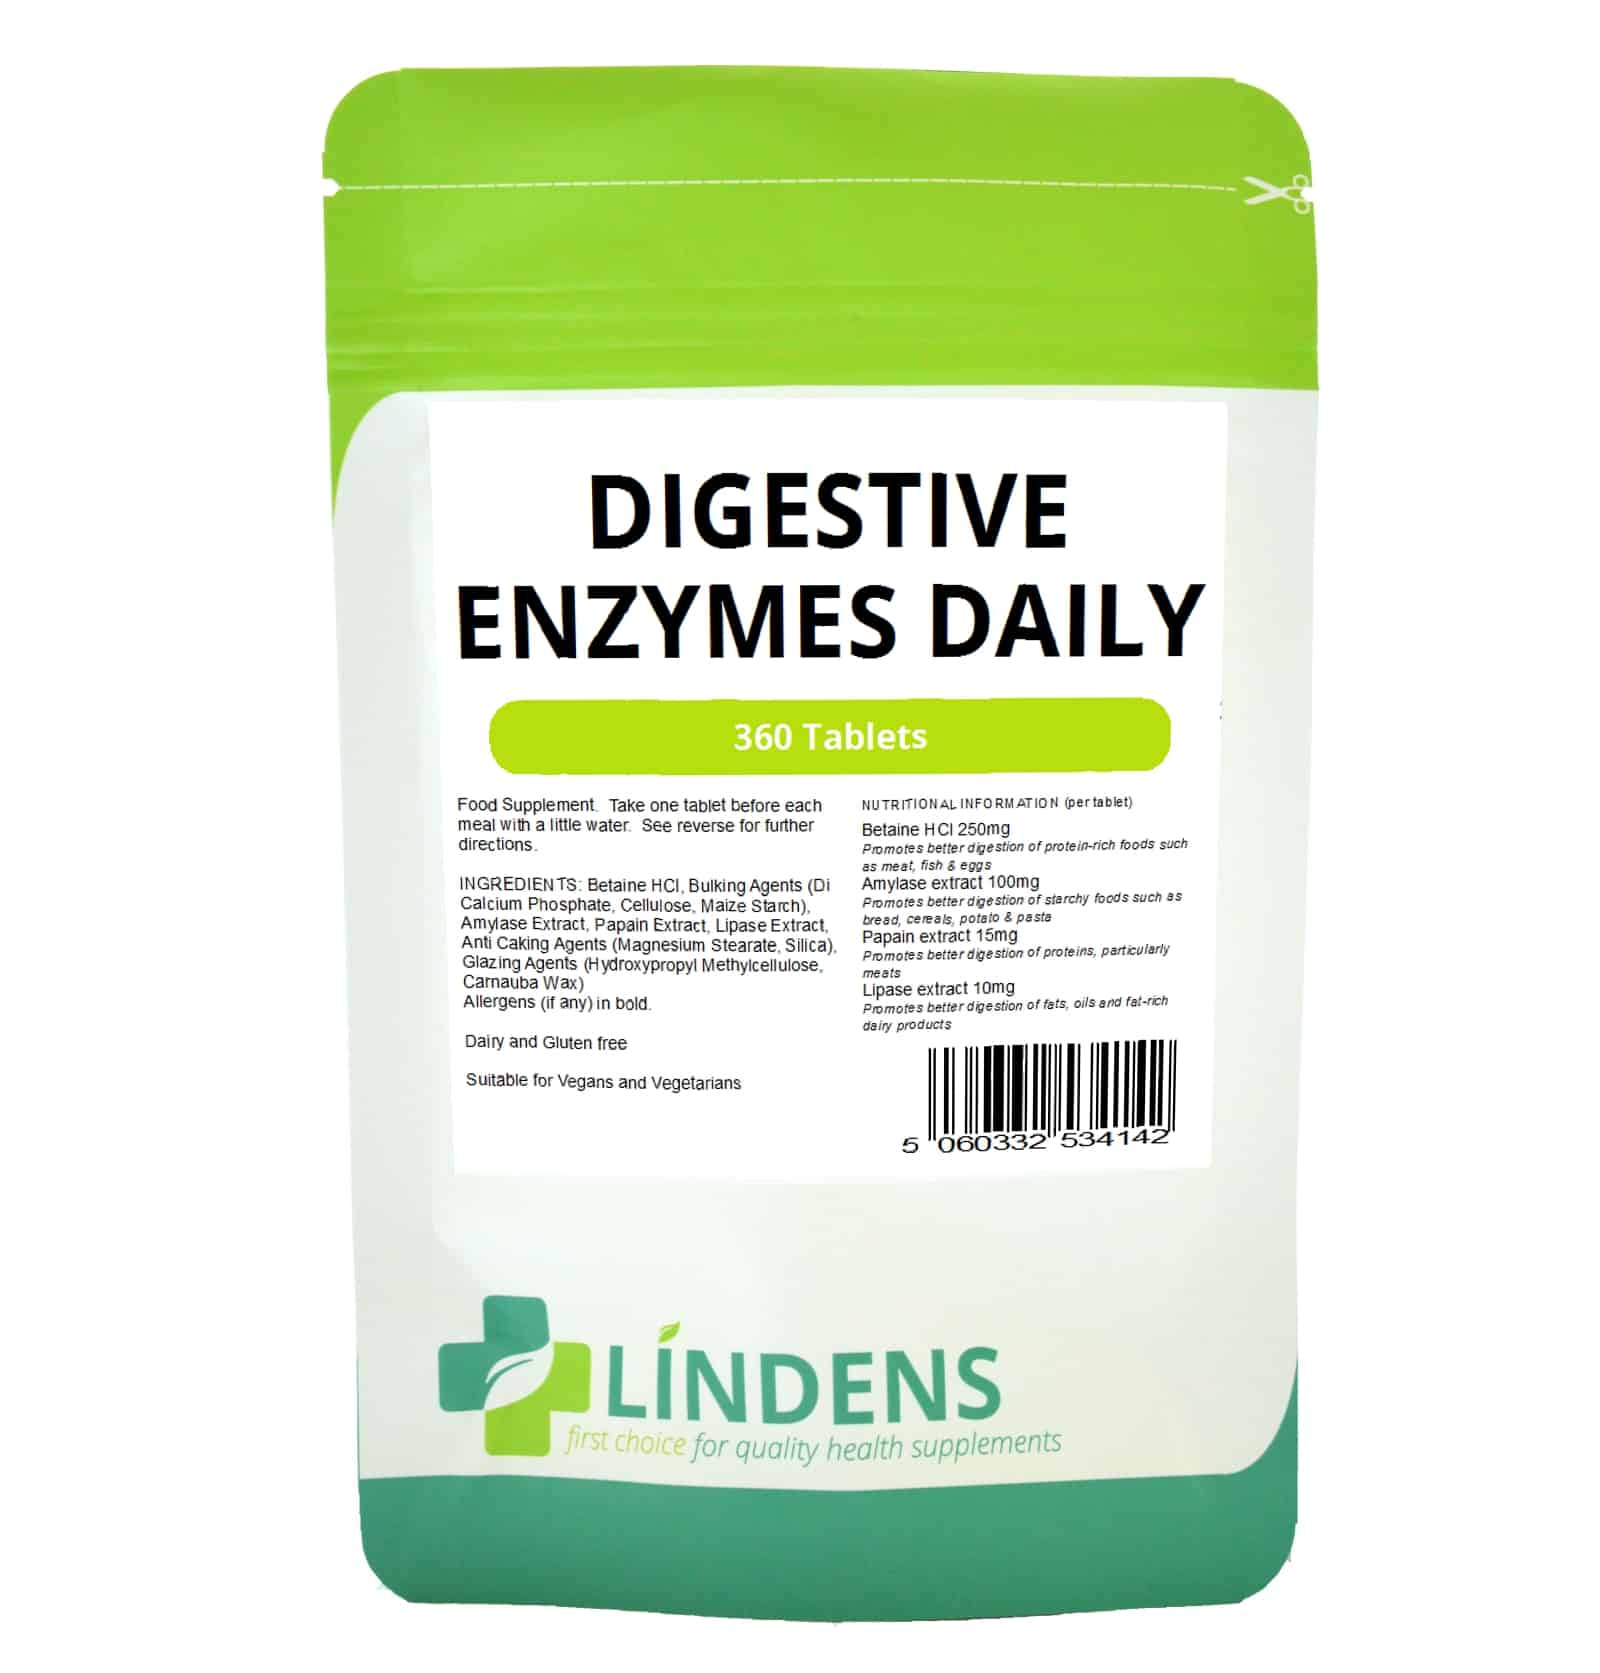 Digestive Enzymes Daily Tablets (360 pack) - Top Vitamins | 24 Hr Dispatch  | FREE Delivery